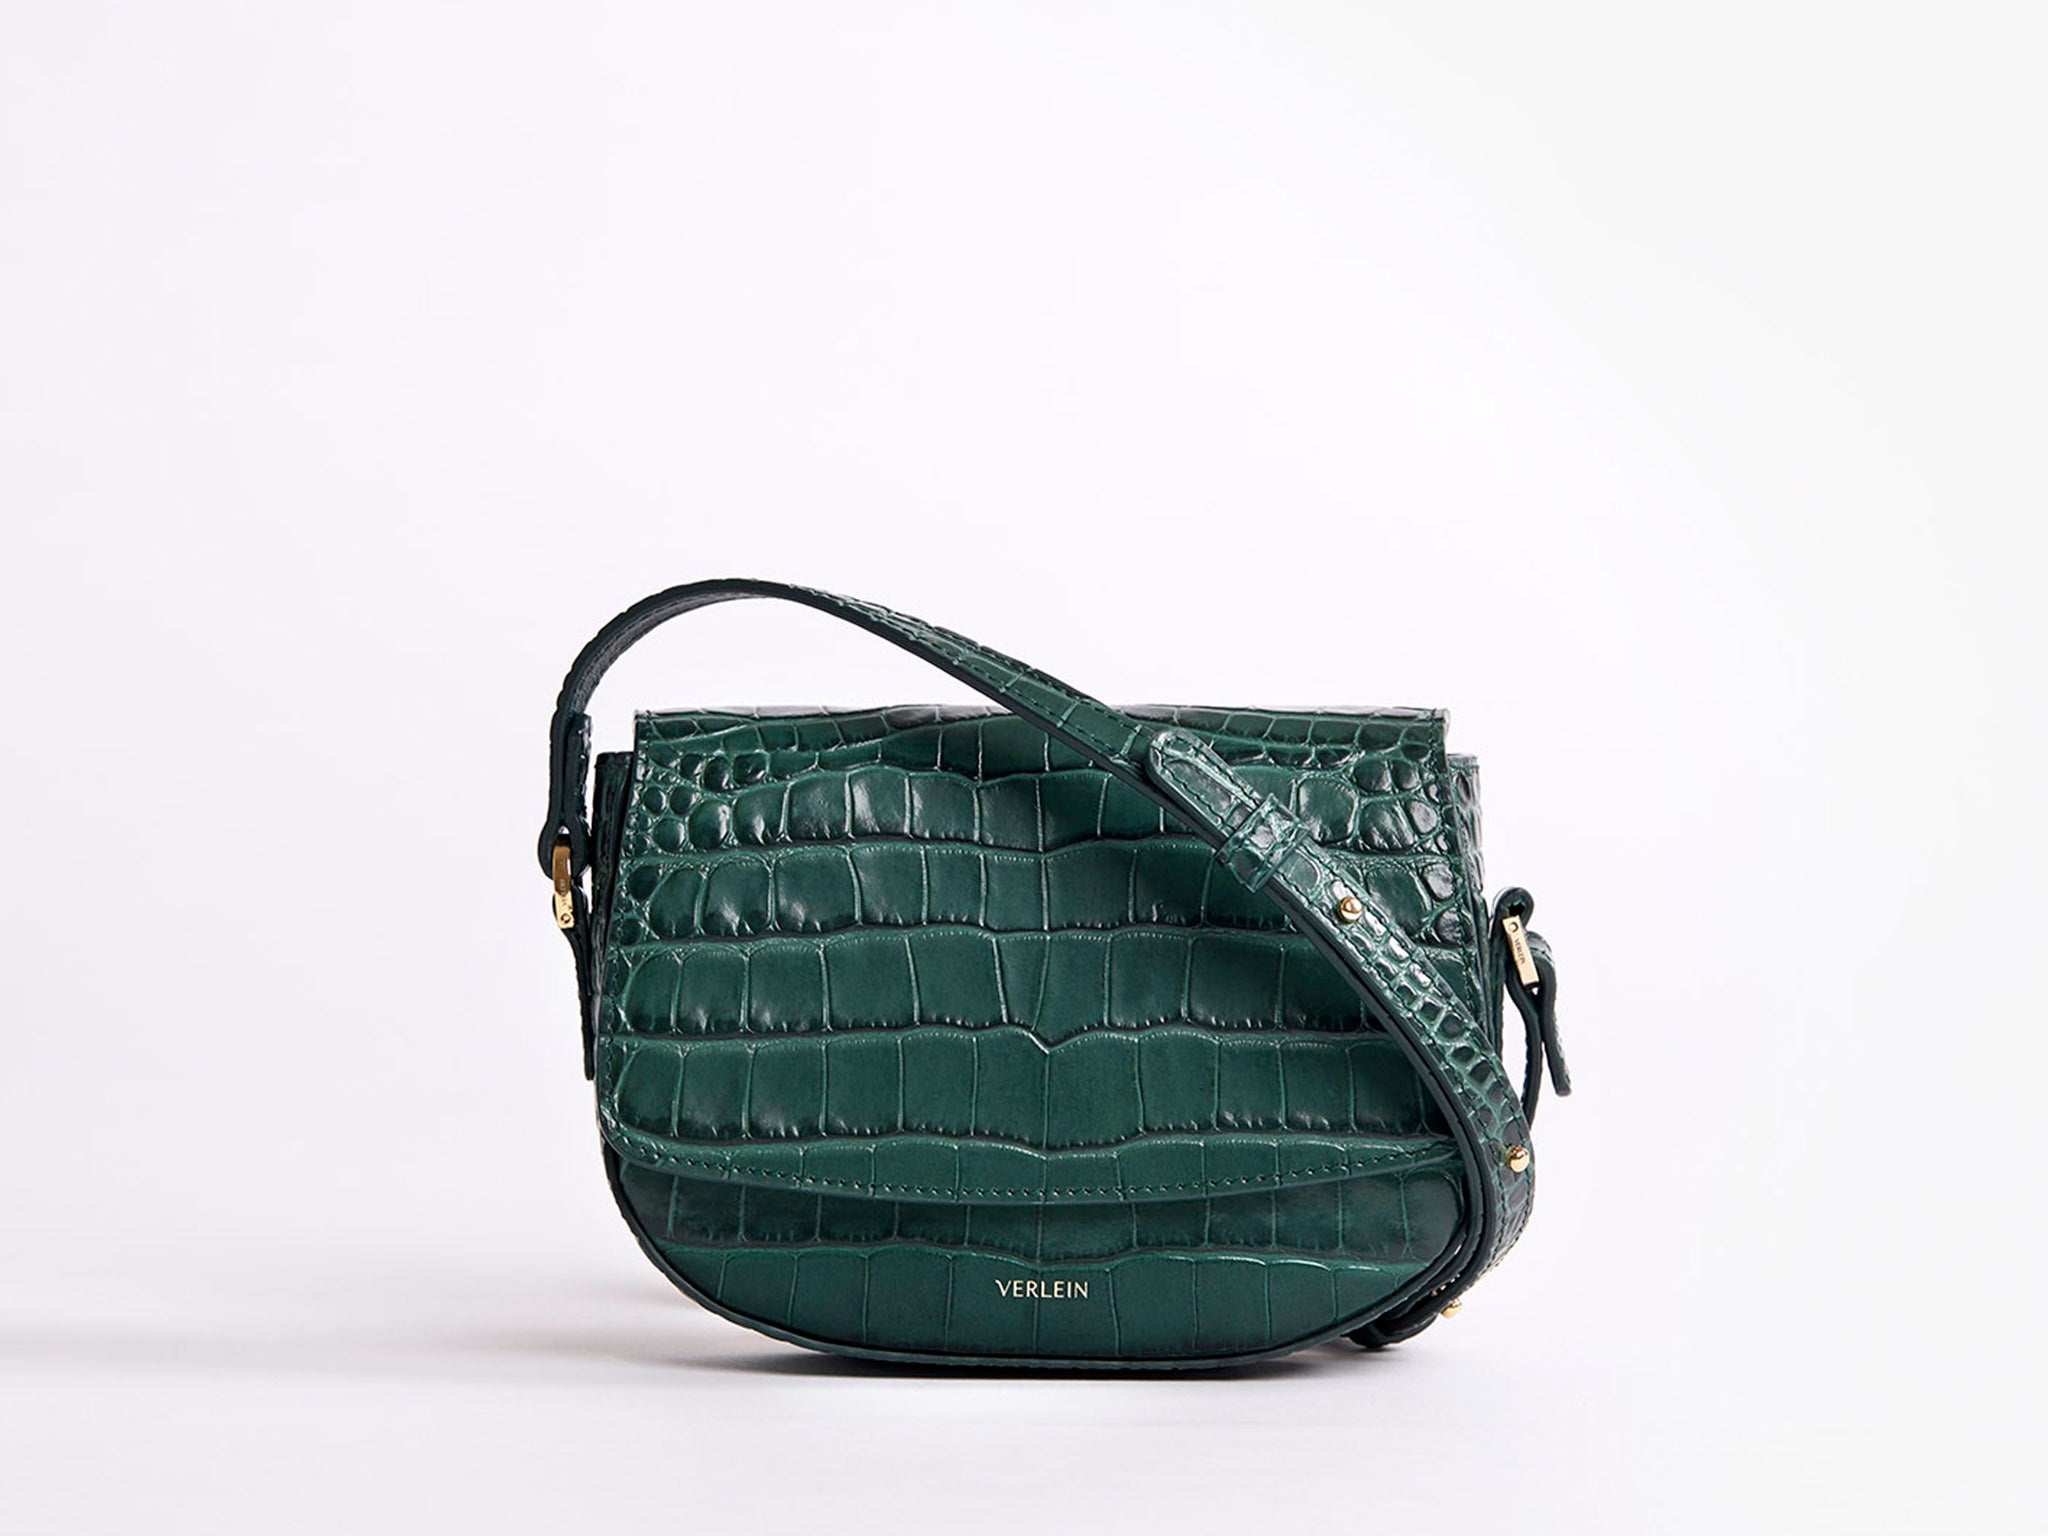 Amazon Green | Ana Mini Croc Crossbody | Verlein